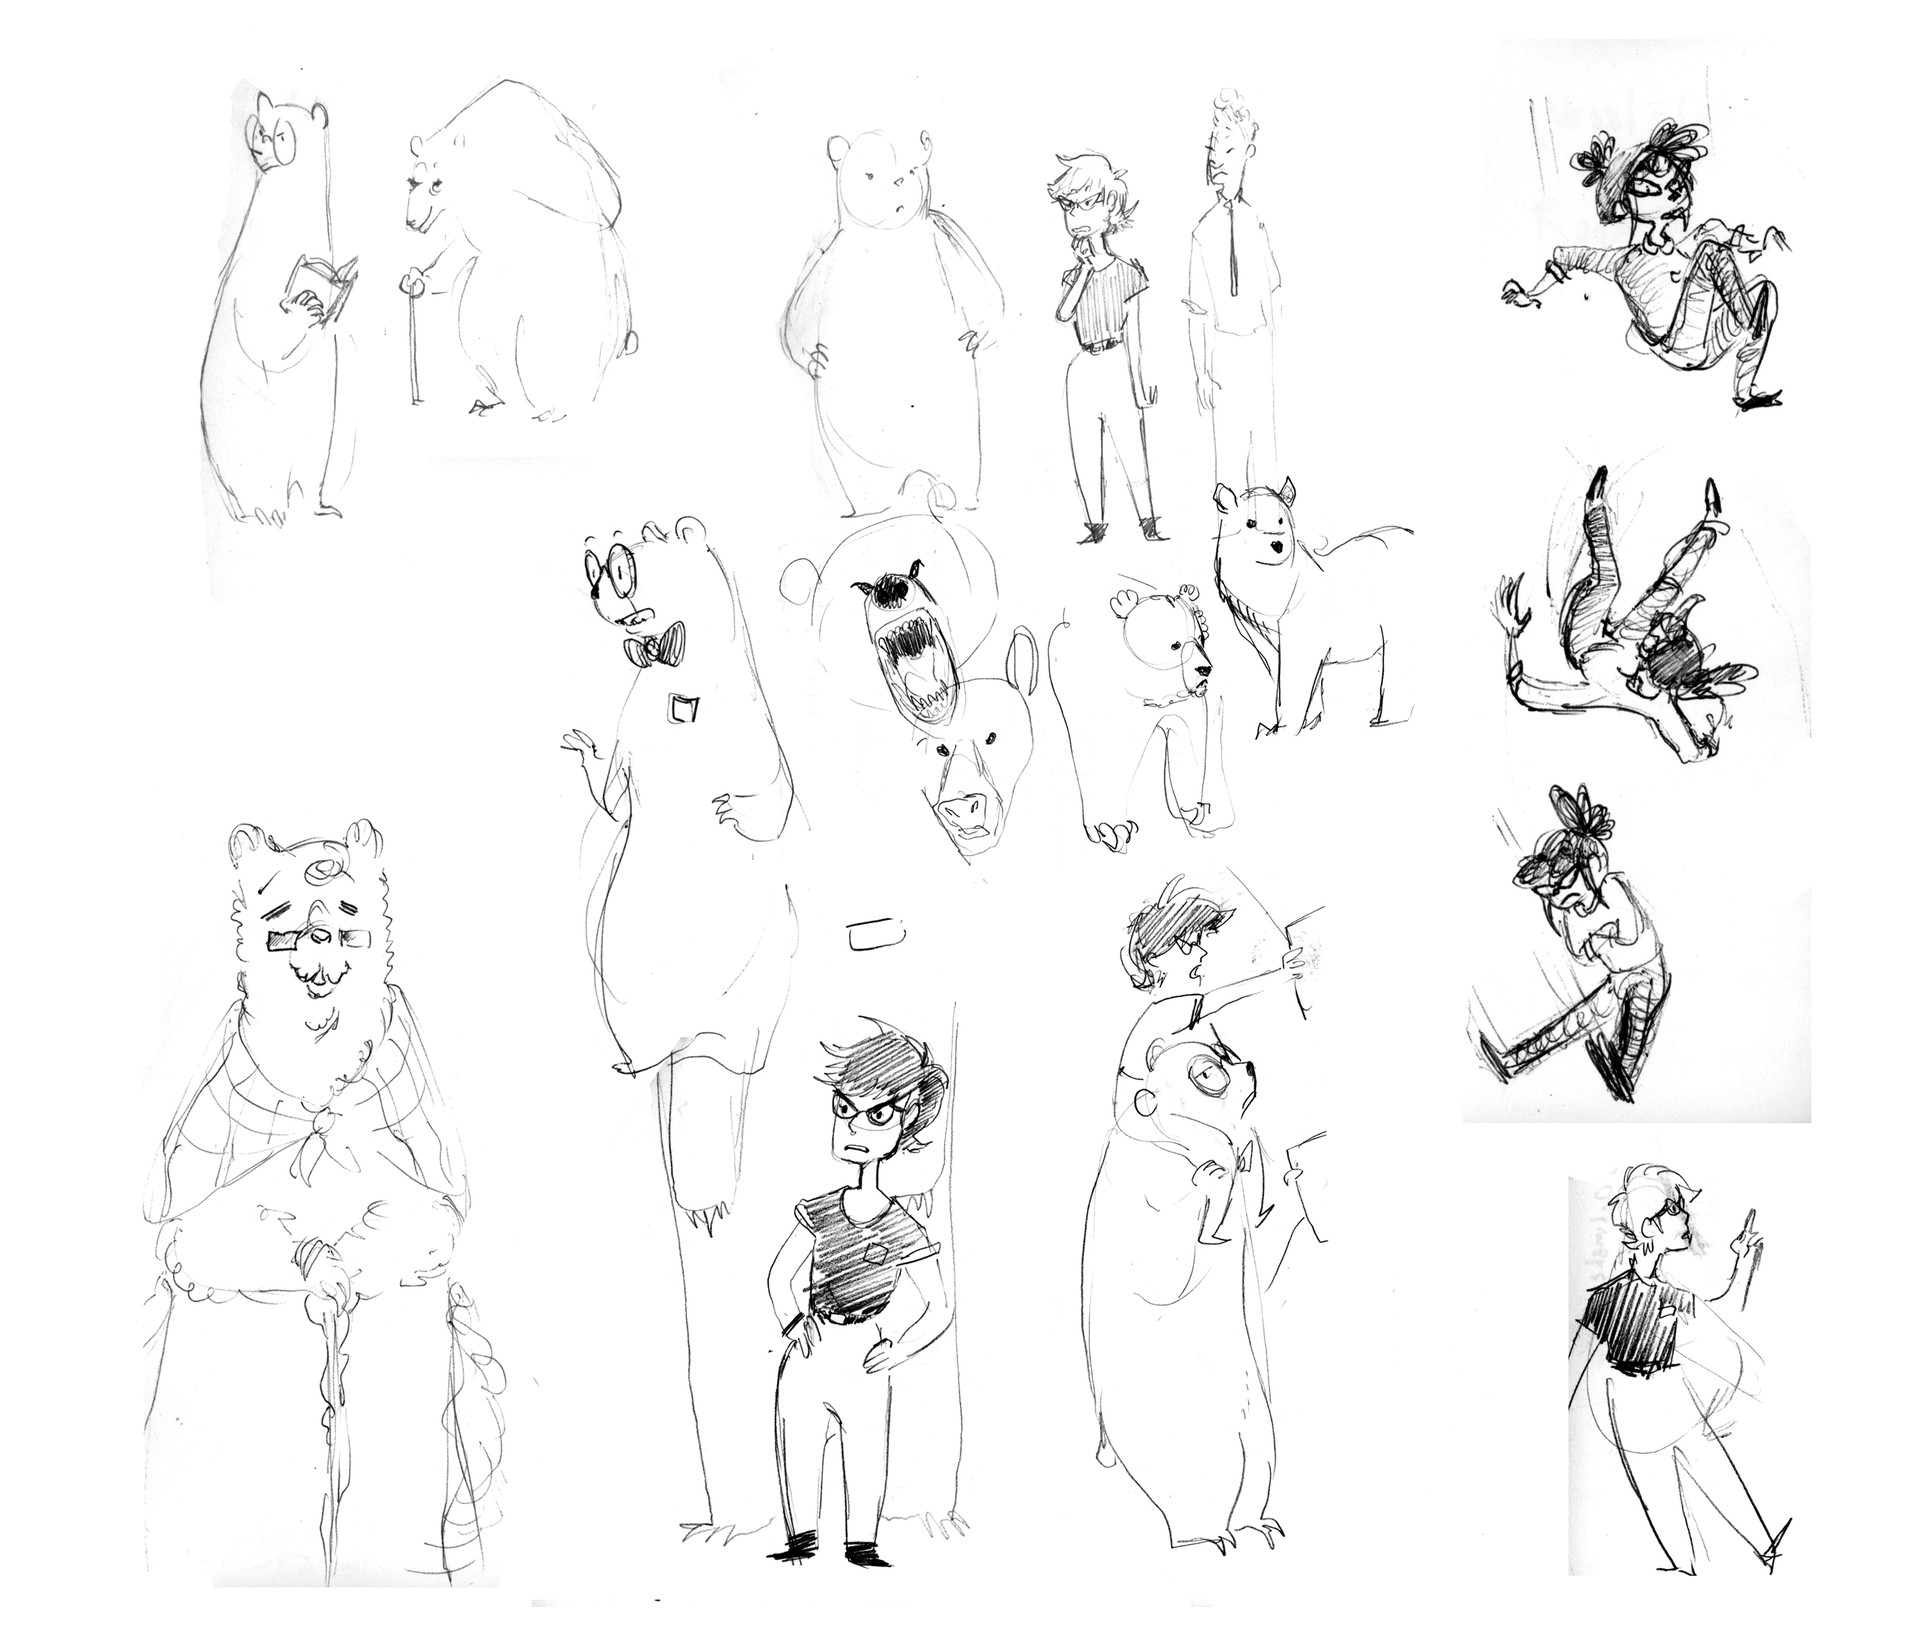 Erin hoover sketches1